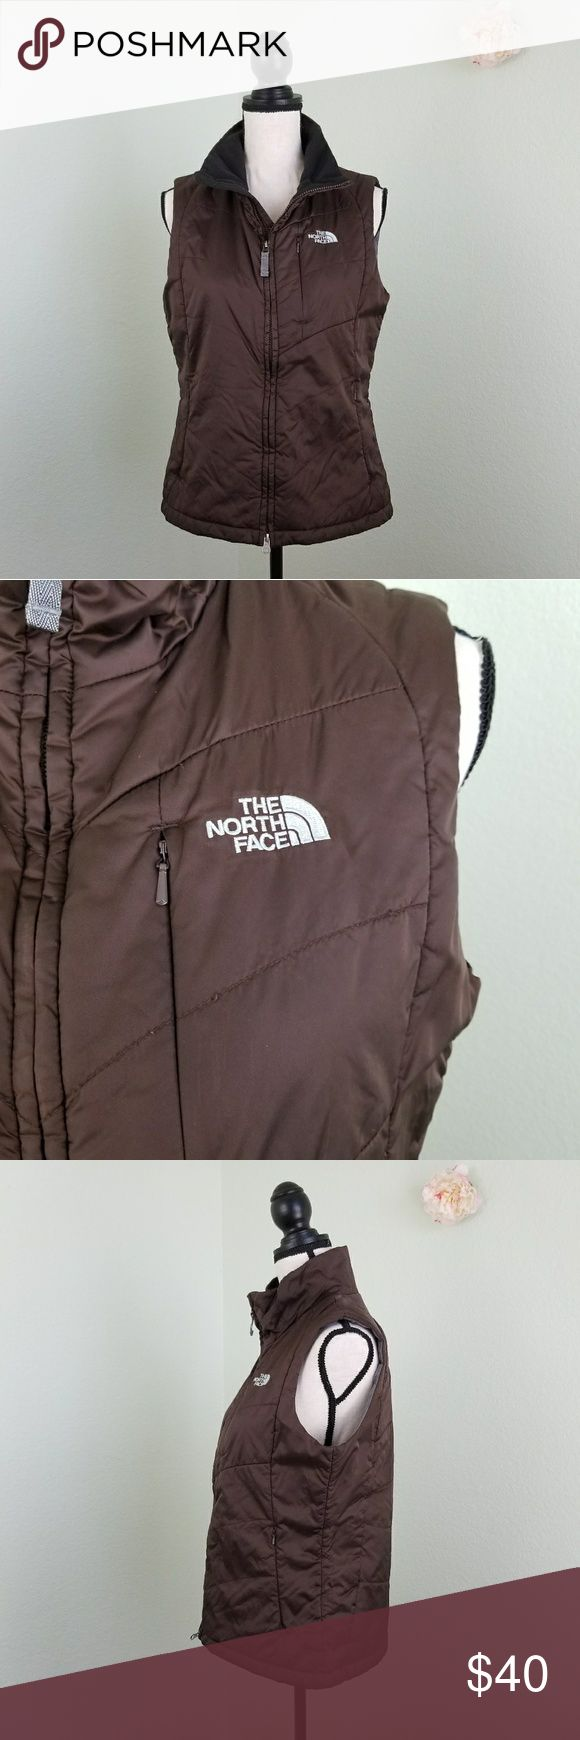 North Face light brown puffer vest Size medium North Face light brown puffer vest Size medium   Like new condition. Would look great with a long sleeve t-shirt and skinny jeans, add hunter boots! The North Face Jackets & Coats Vests